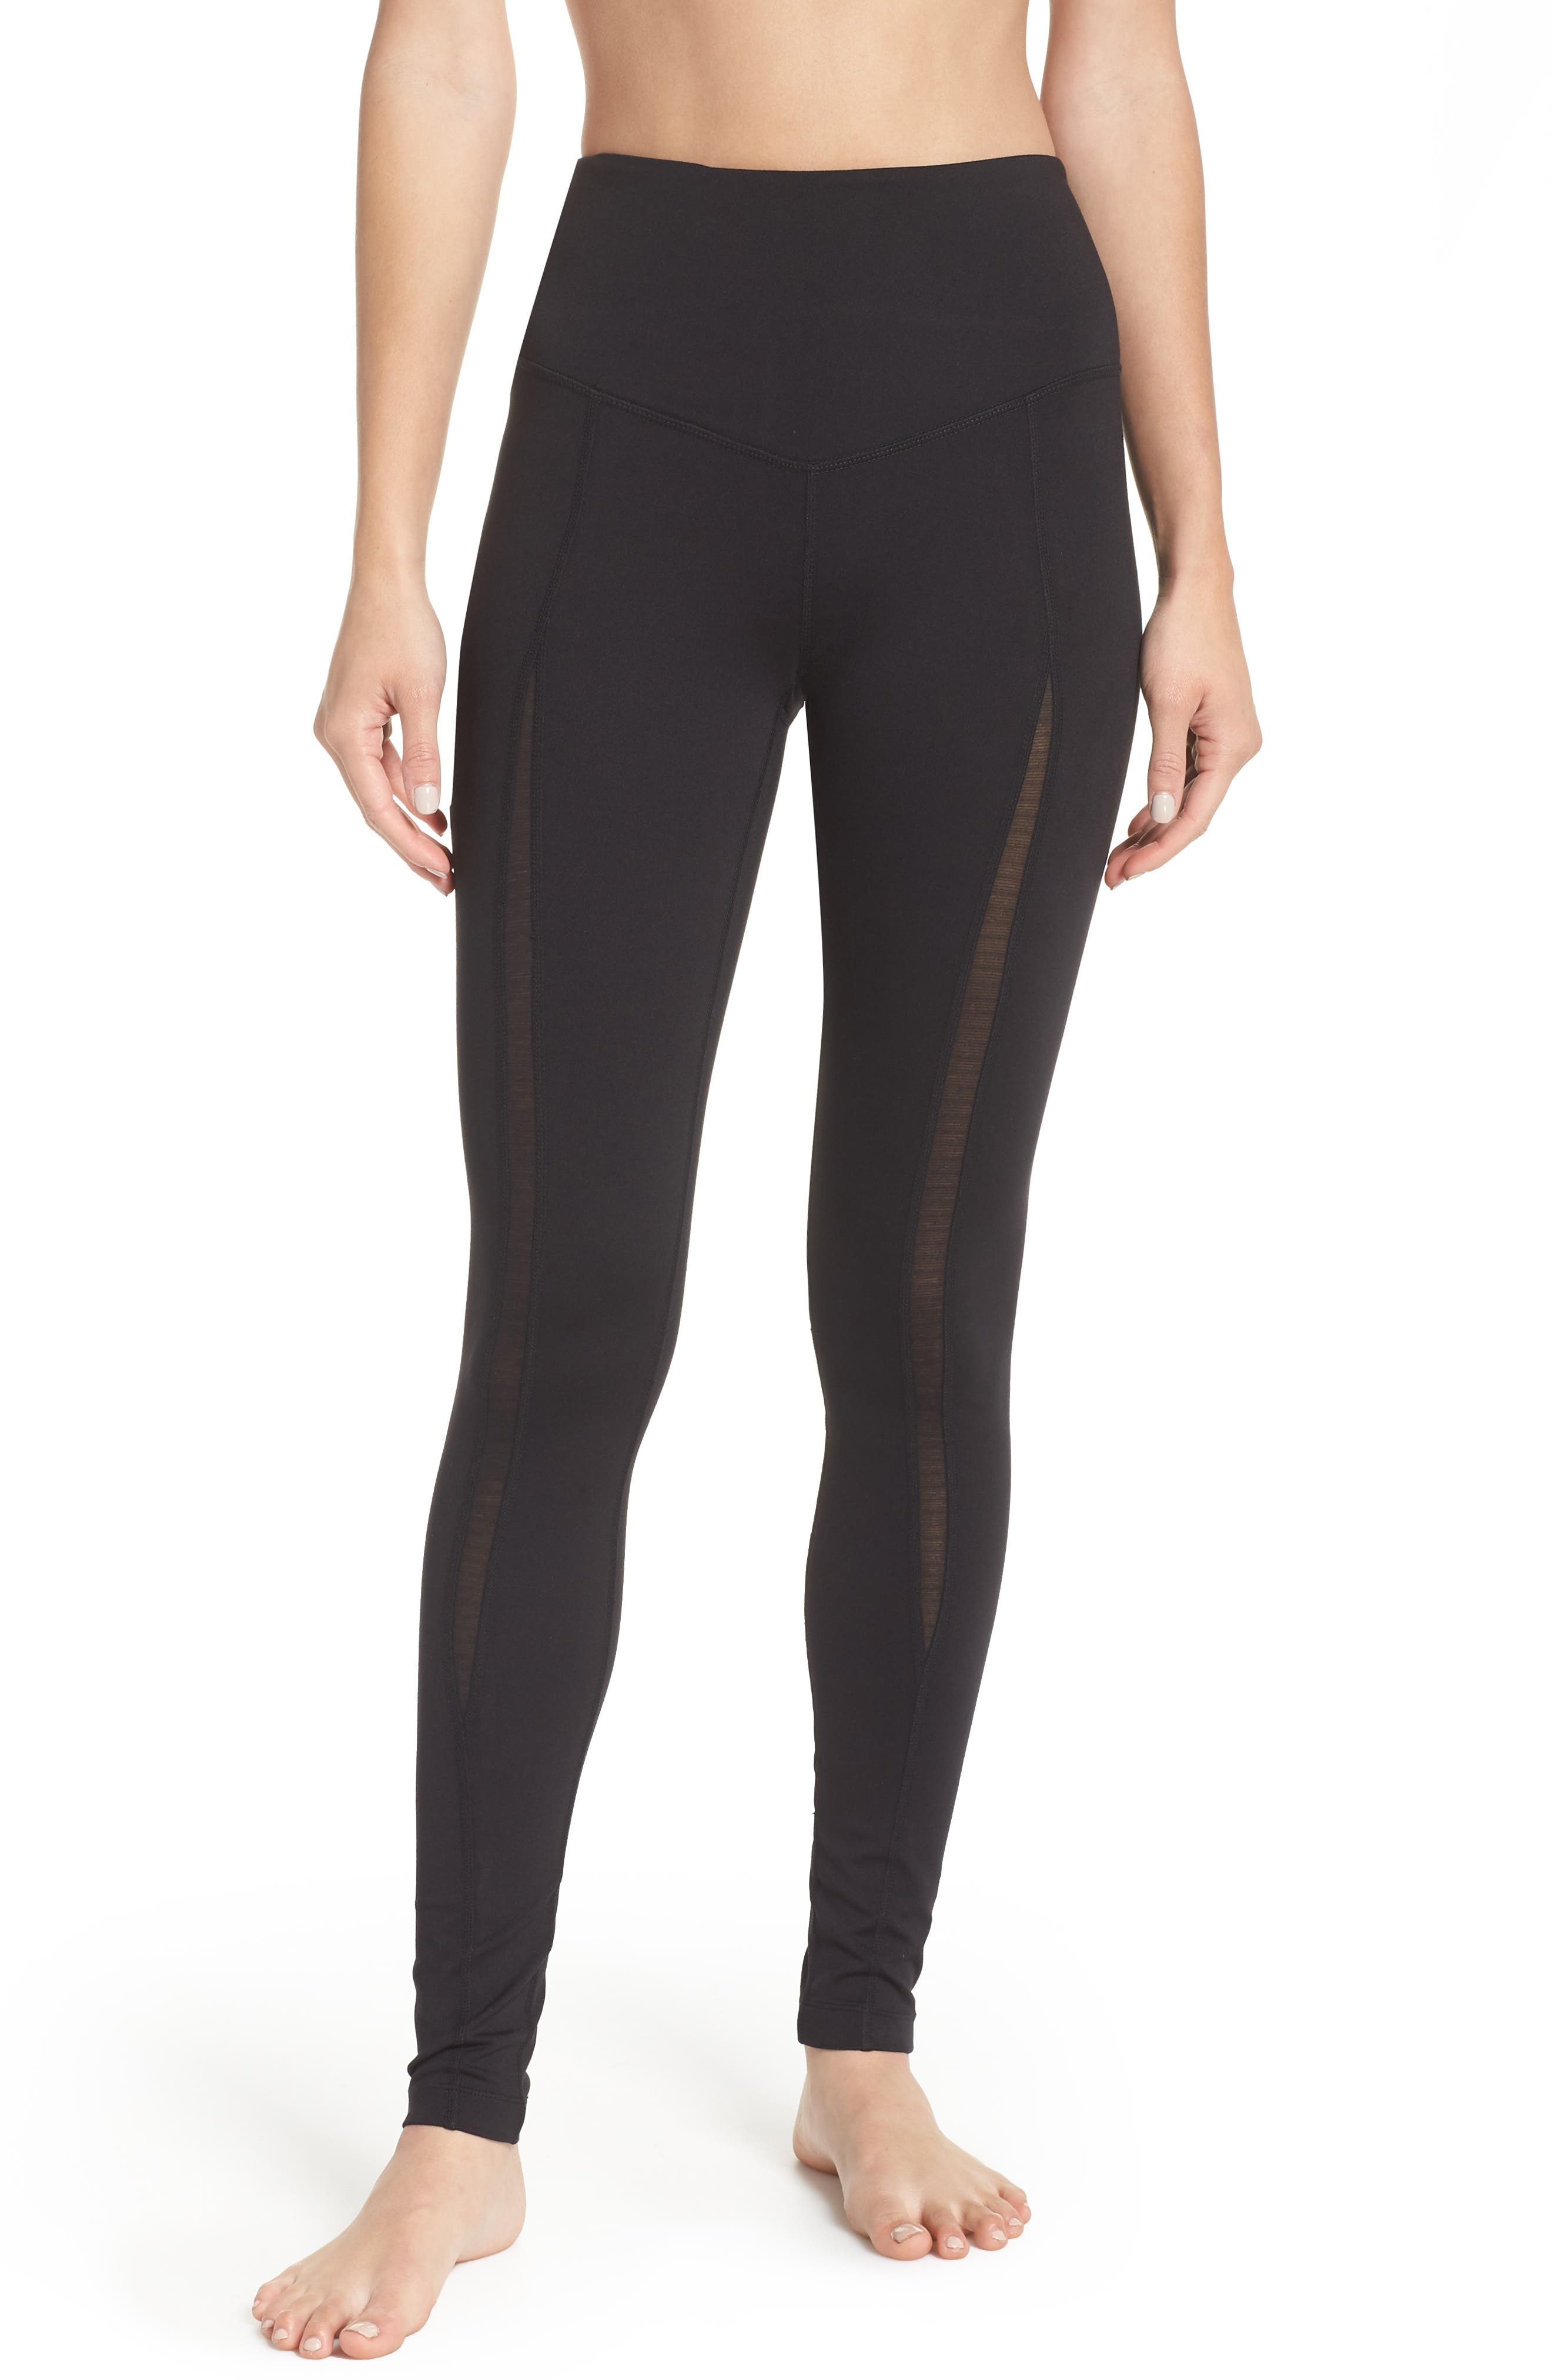 Reinvent Recycled High Waist Leggings,                         Main,                         color, BLACK